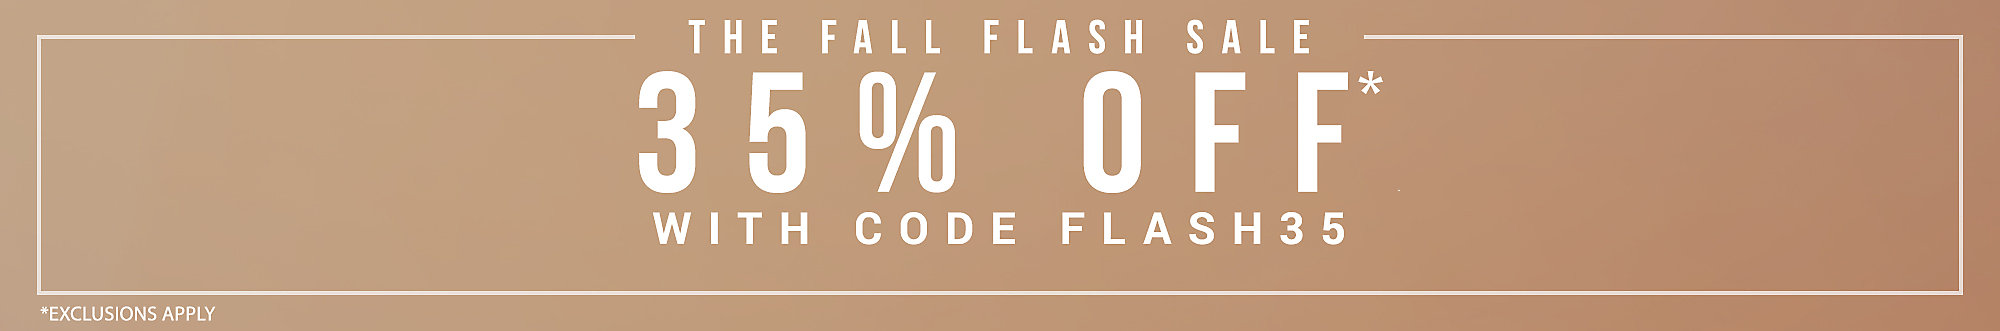 Up To 35% Off With Code FLASH35